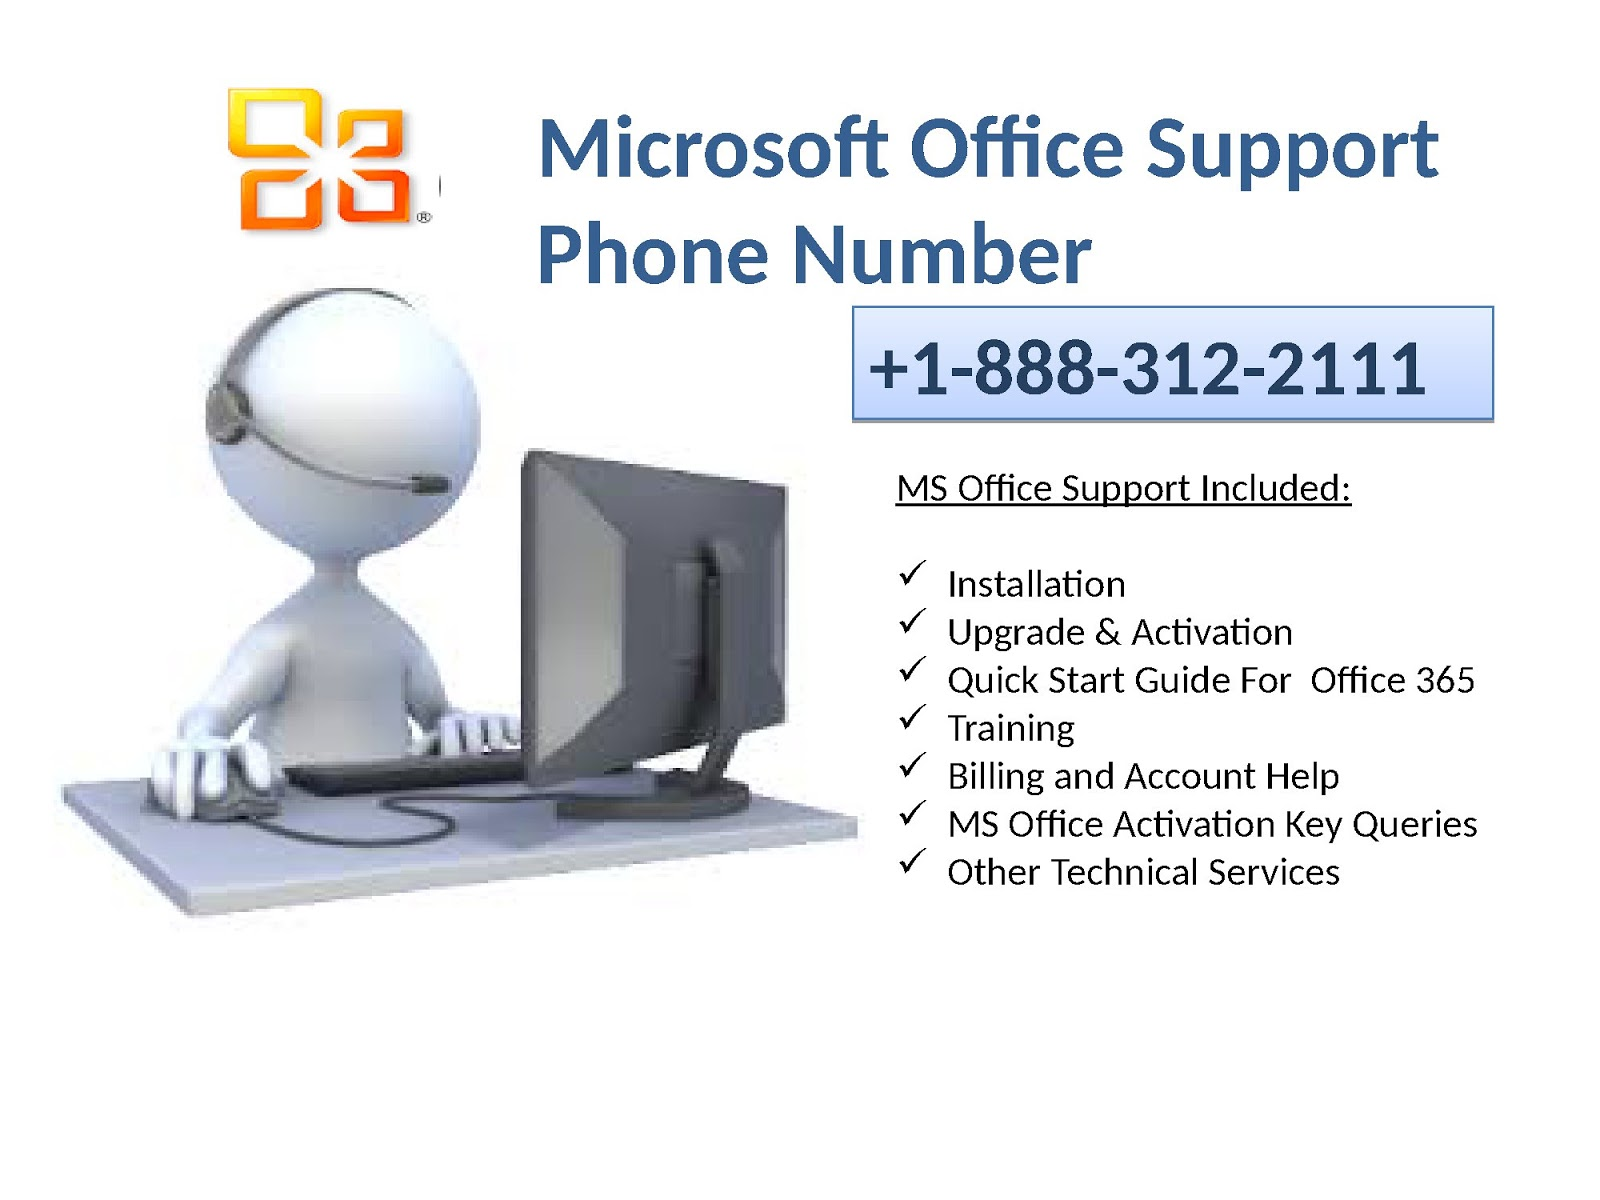 contact experts at office 365 support number to setup email on mac